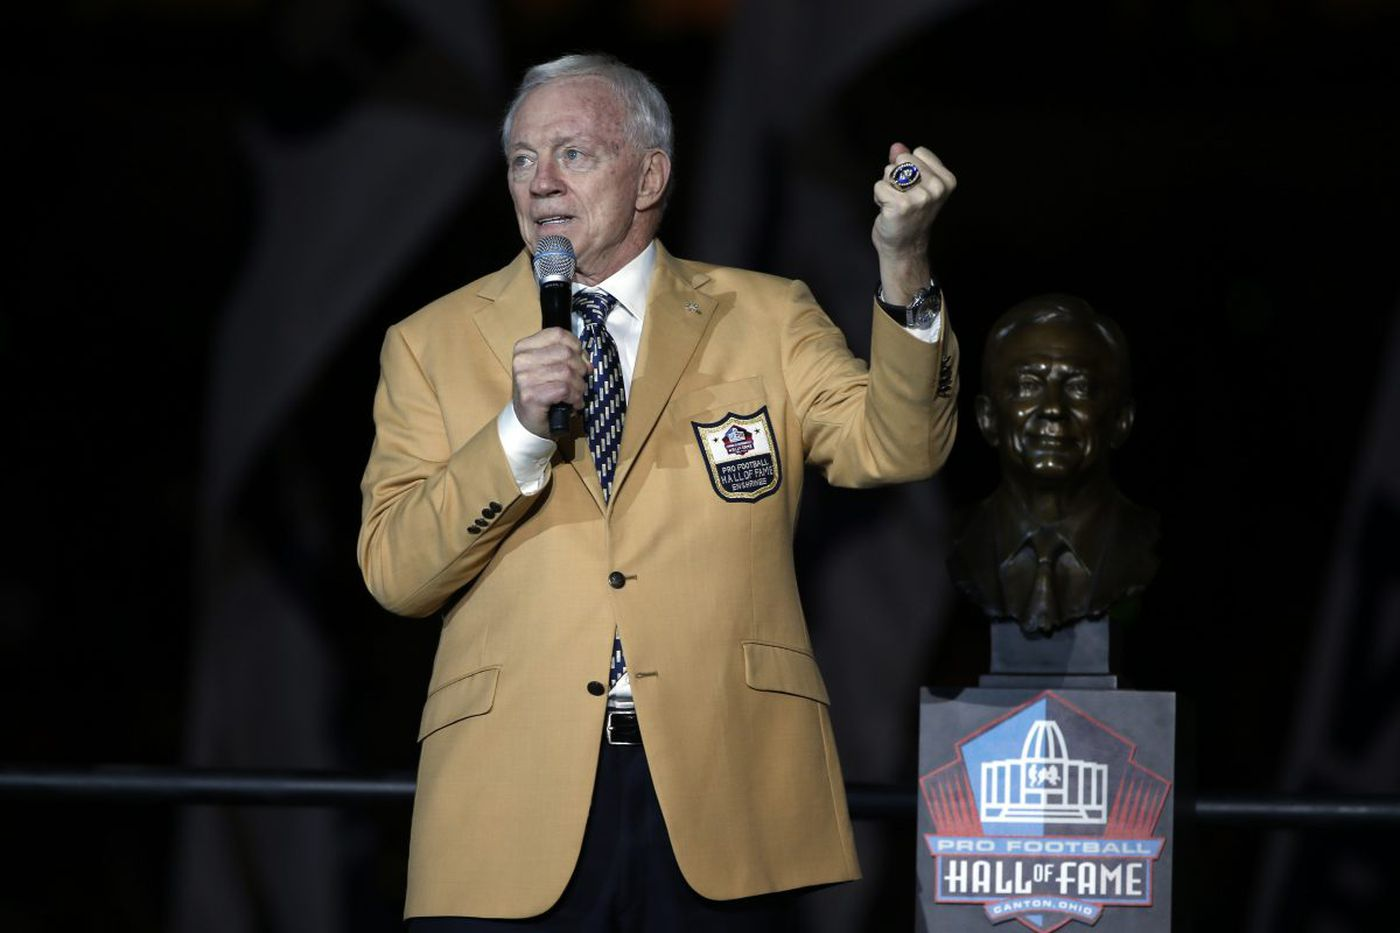 Cowboys owner Jerry Jones seems deflated after loss to Eagles   Marcus Hayes